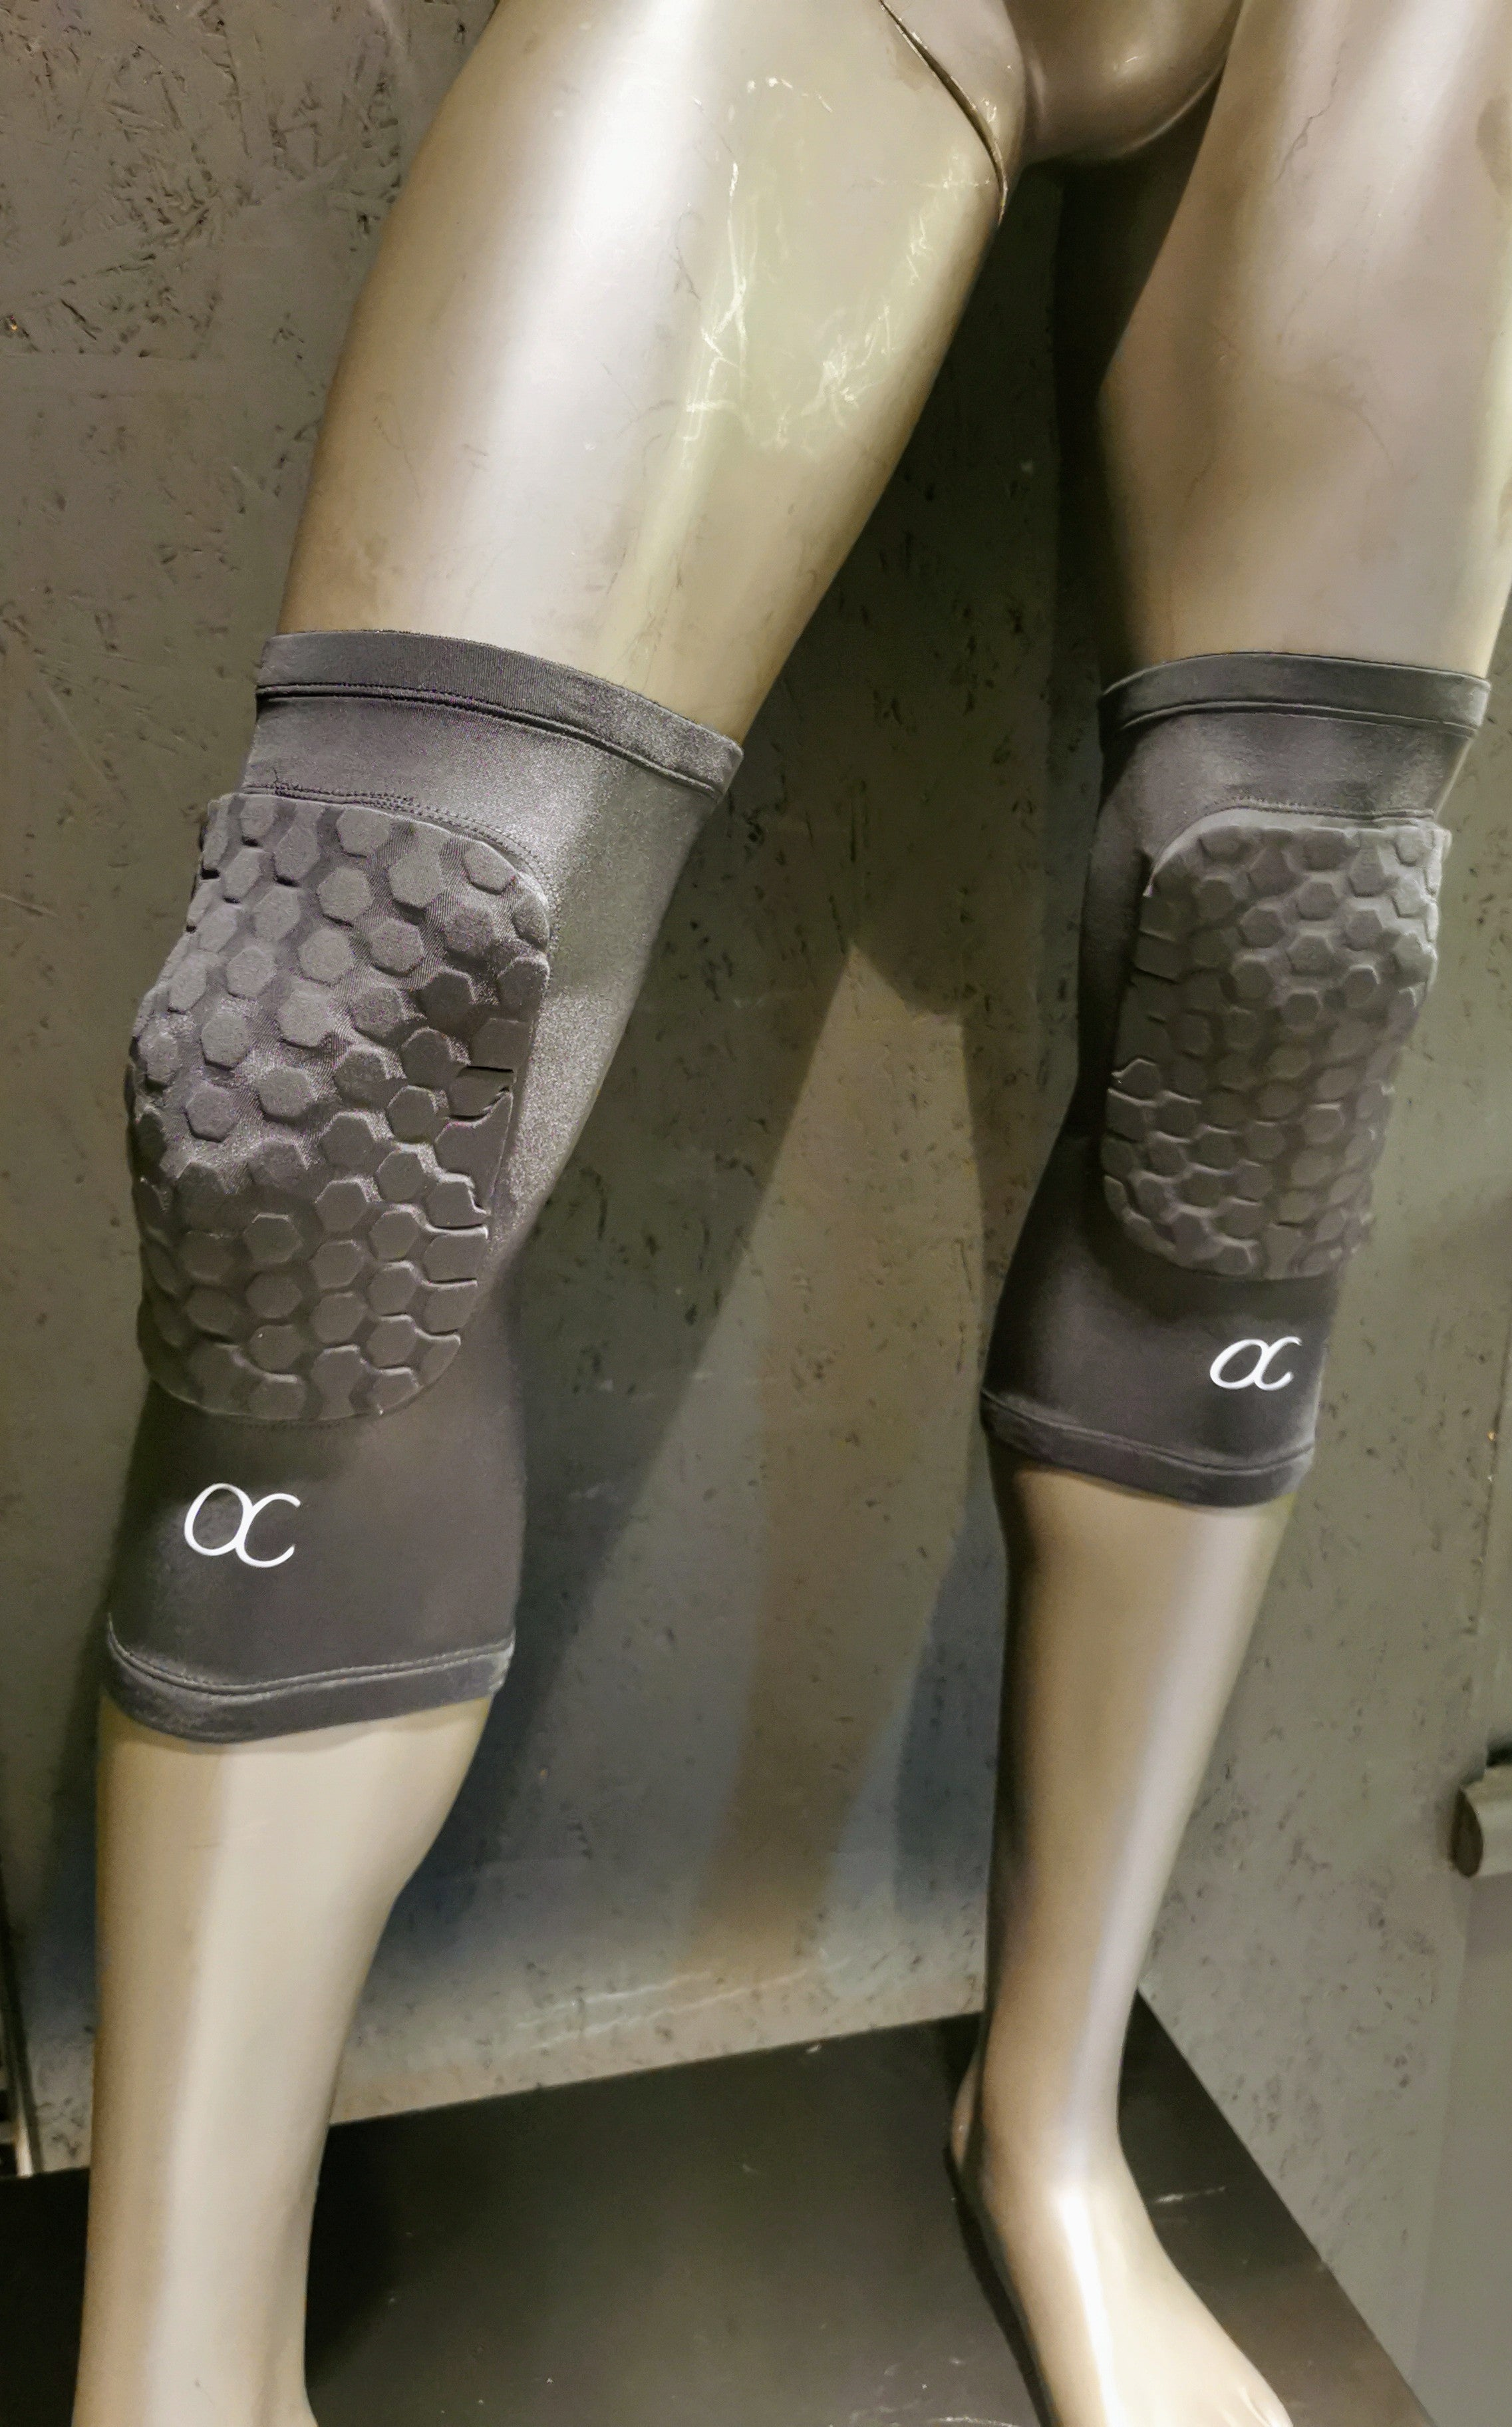 OC Short Knee sleeves pads Double